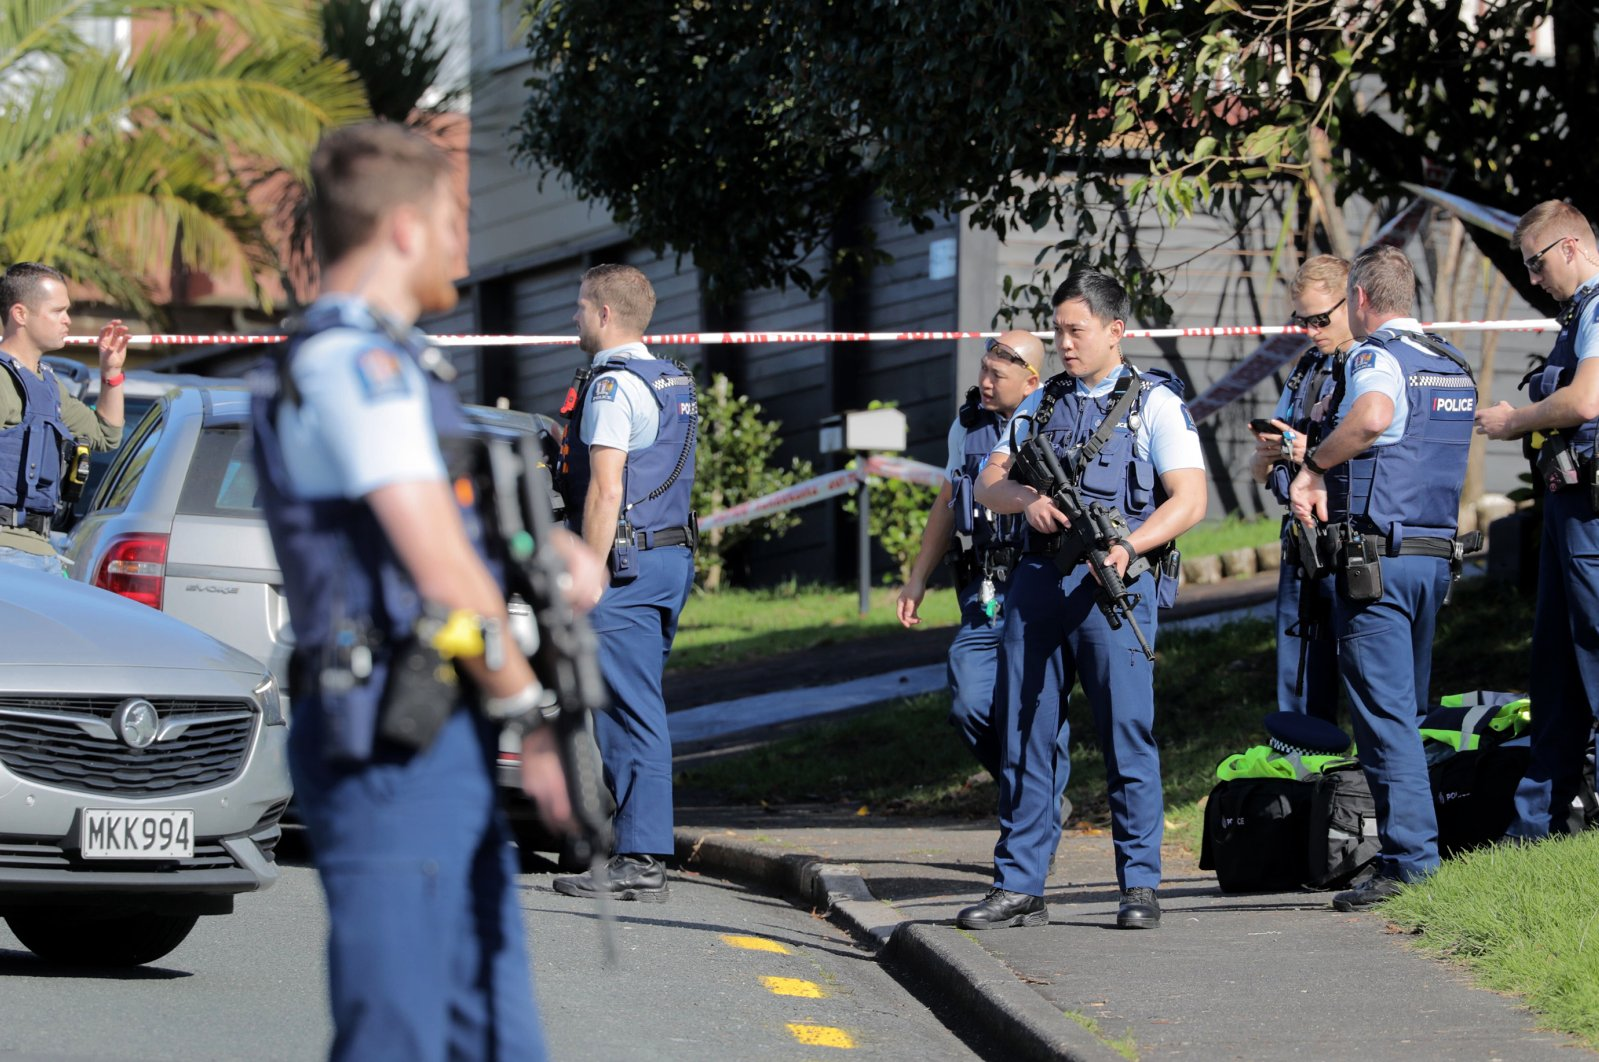 Armed police gather at the scene of a shooting incident following a routine traffic stop, Auckland, New Zealand, June 19, 2020. (AP Photo)